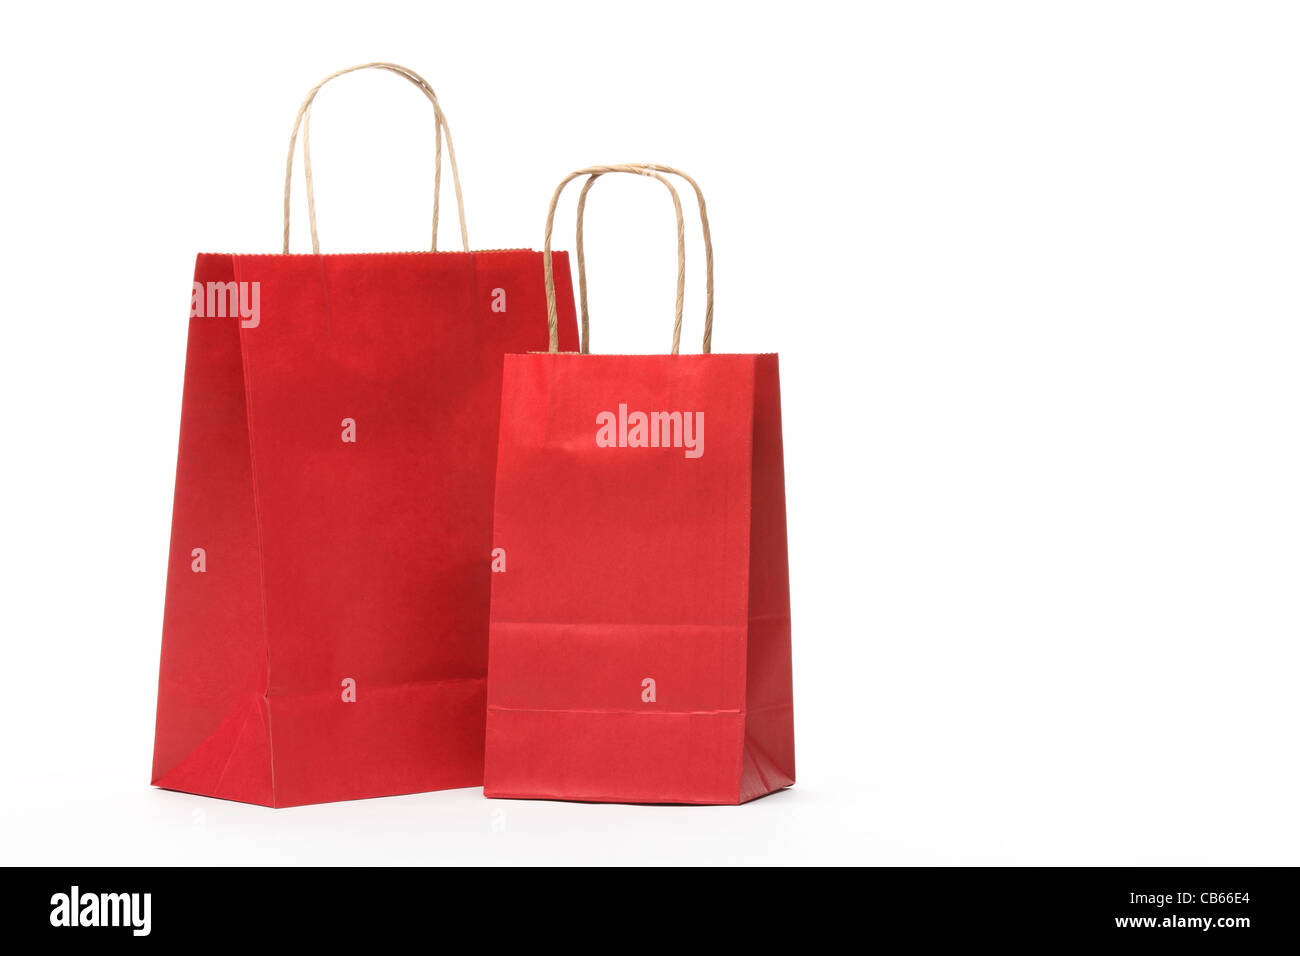 Paper shopping bags isolated on white background. - Stock Image